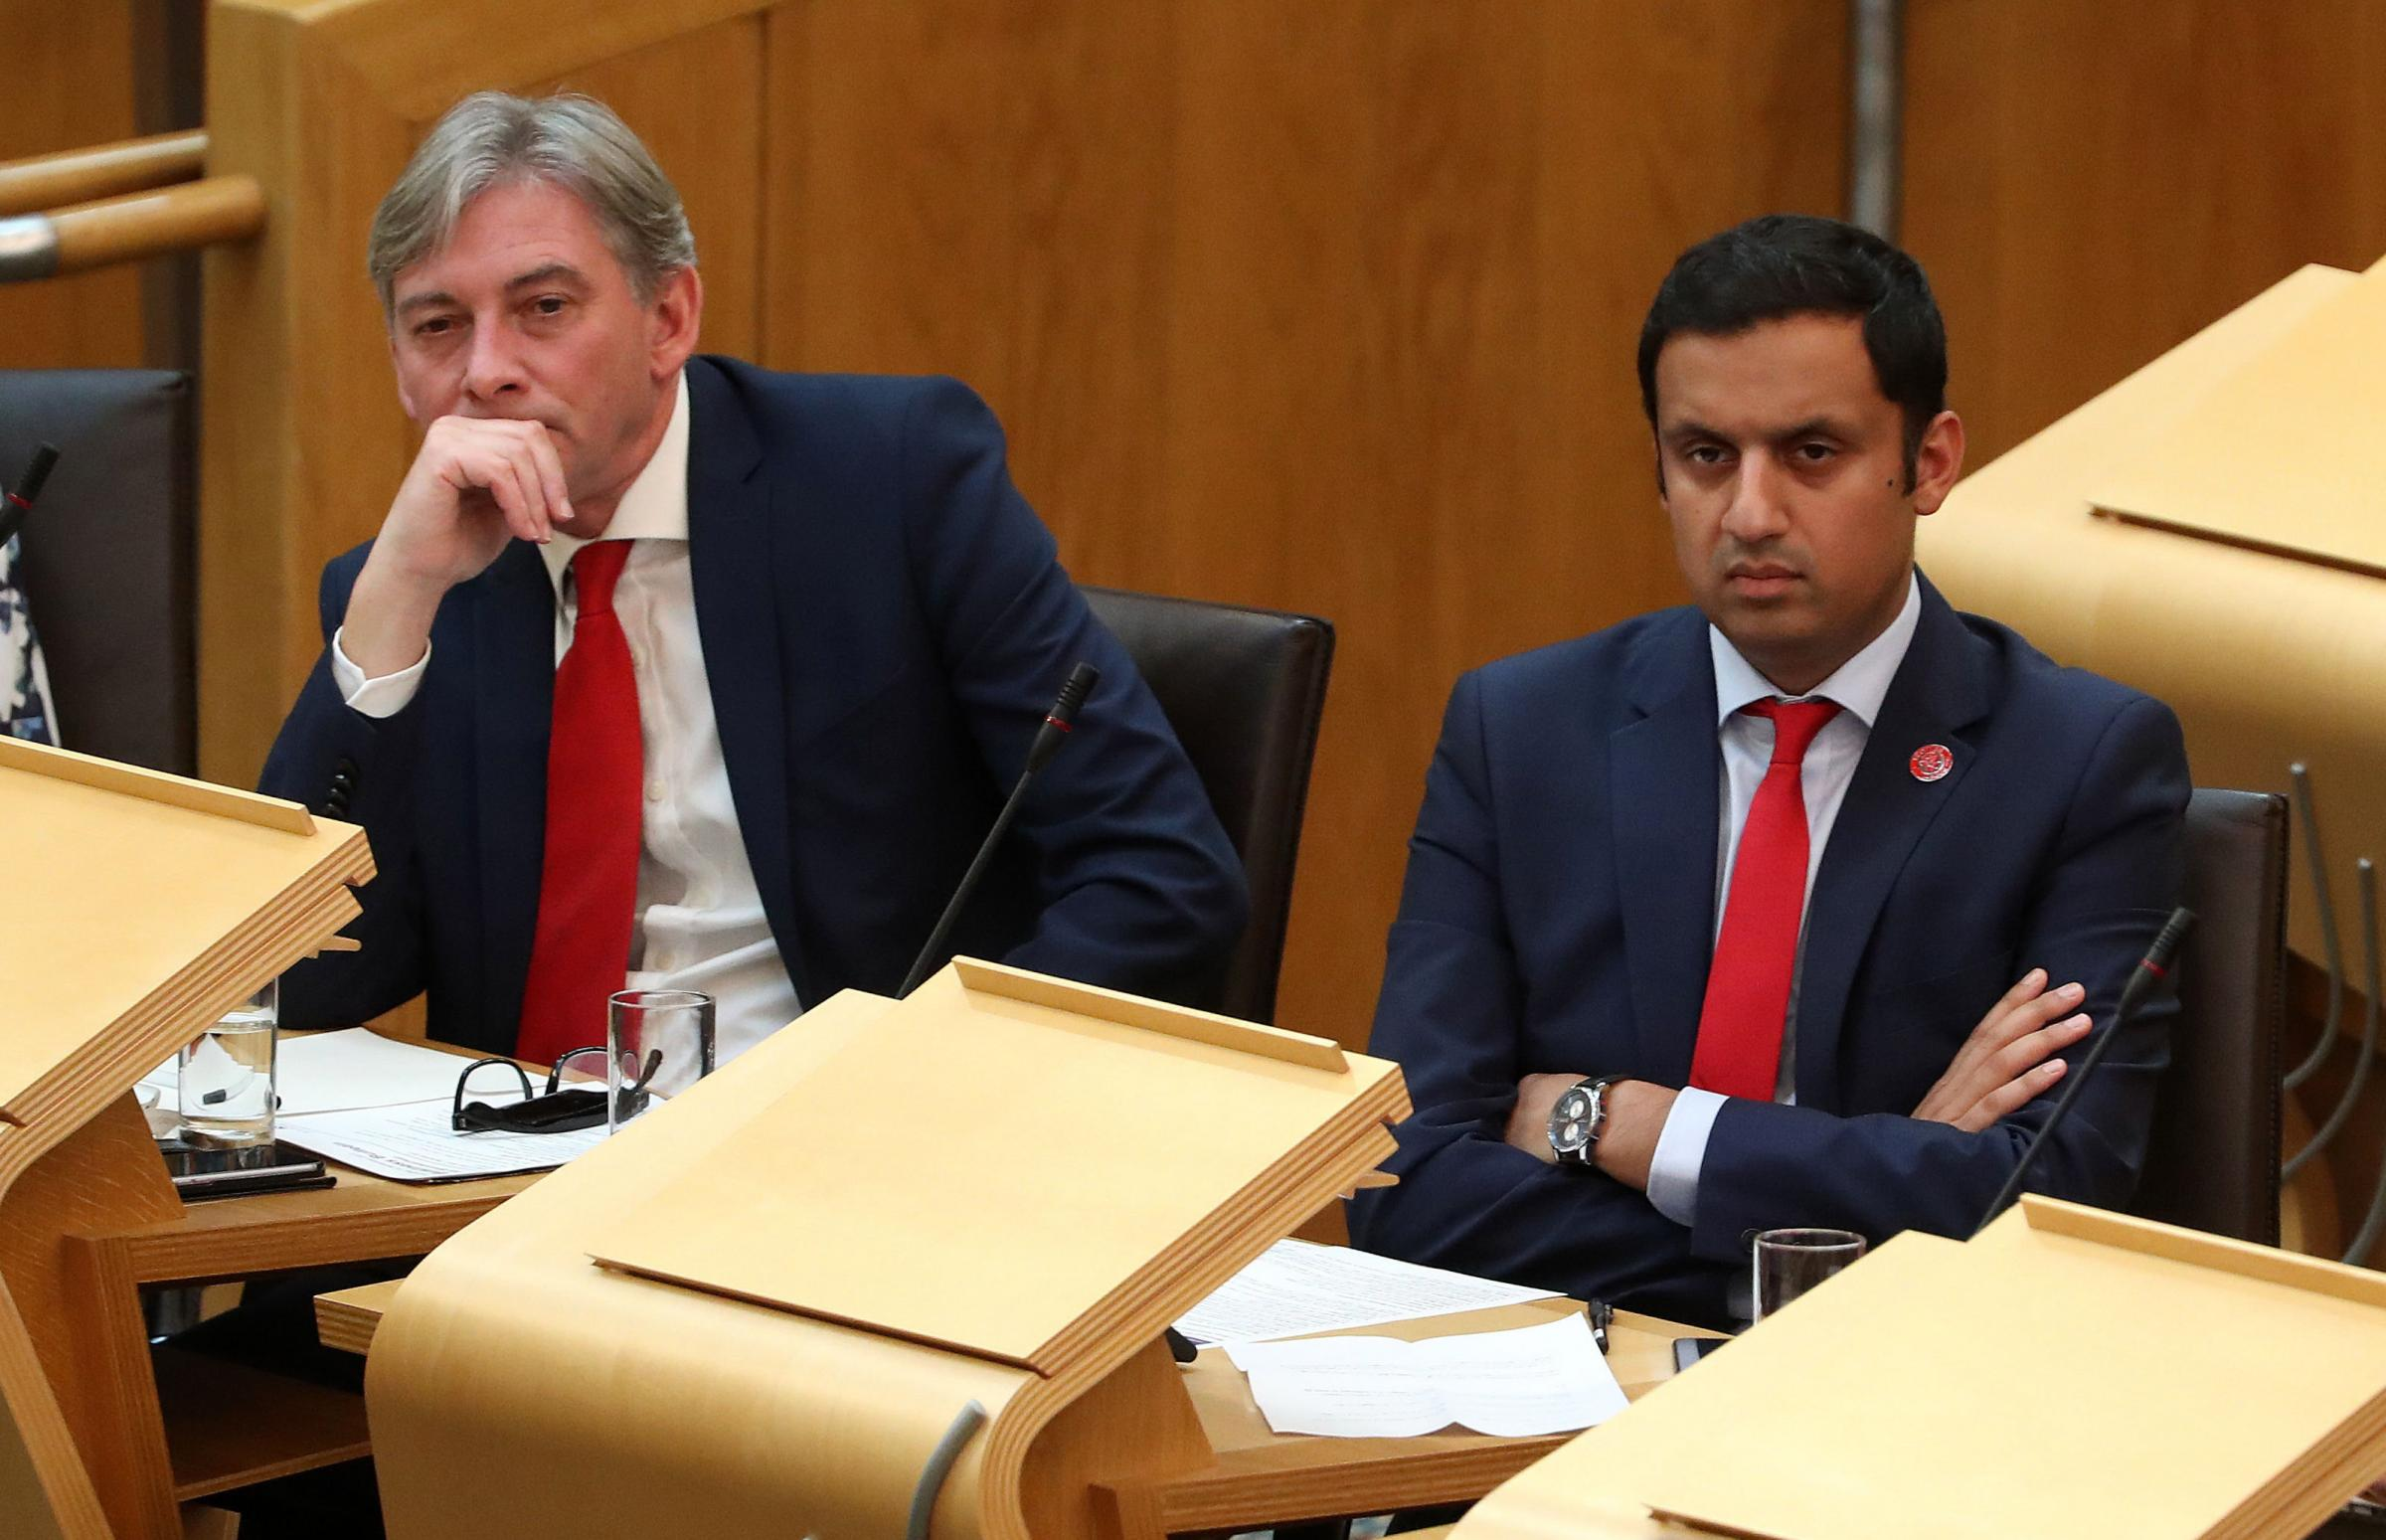 Anas Sarwar found out about his removal on Twitter